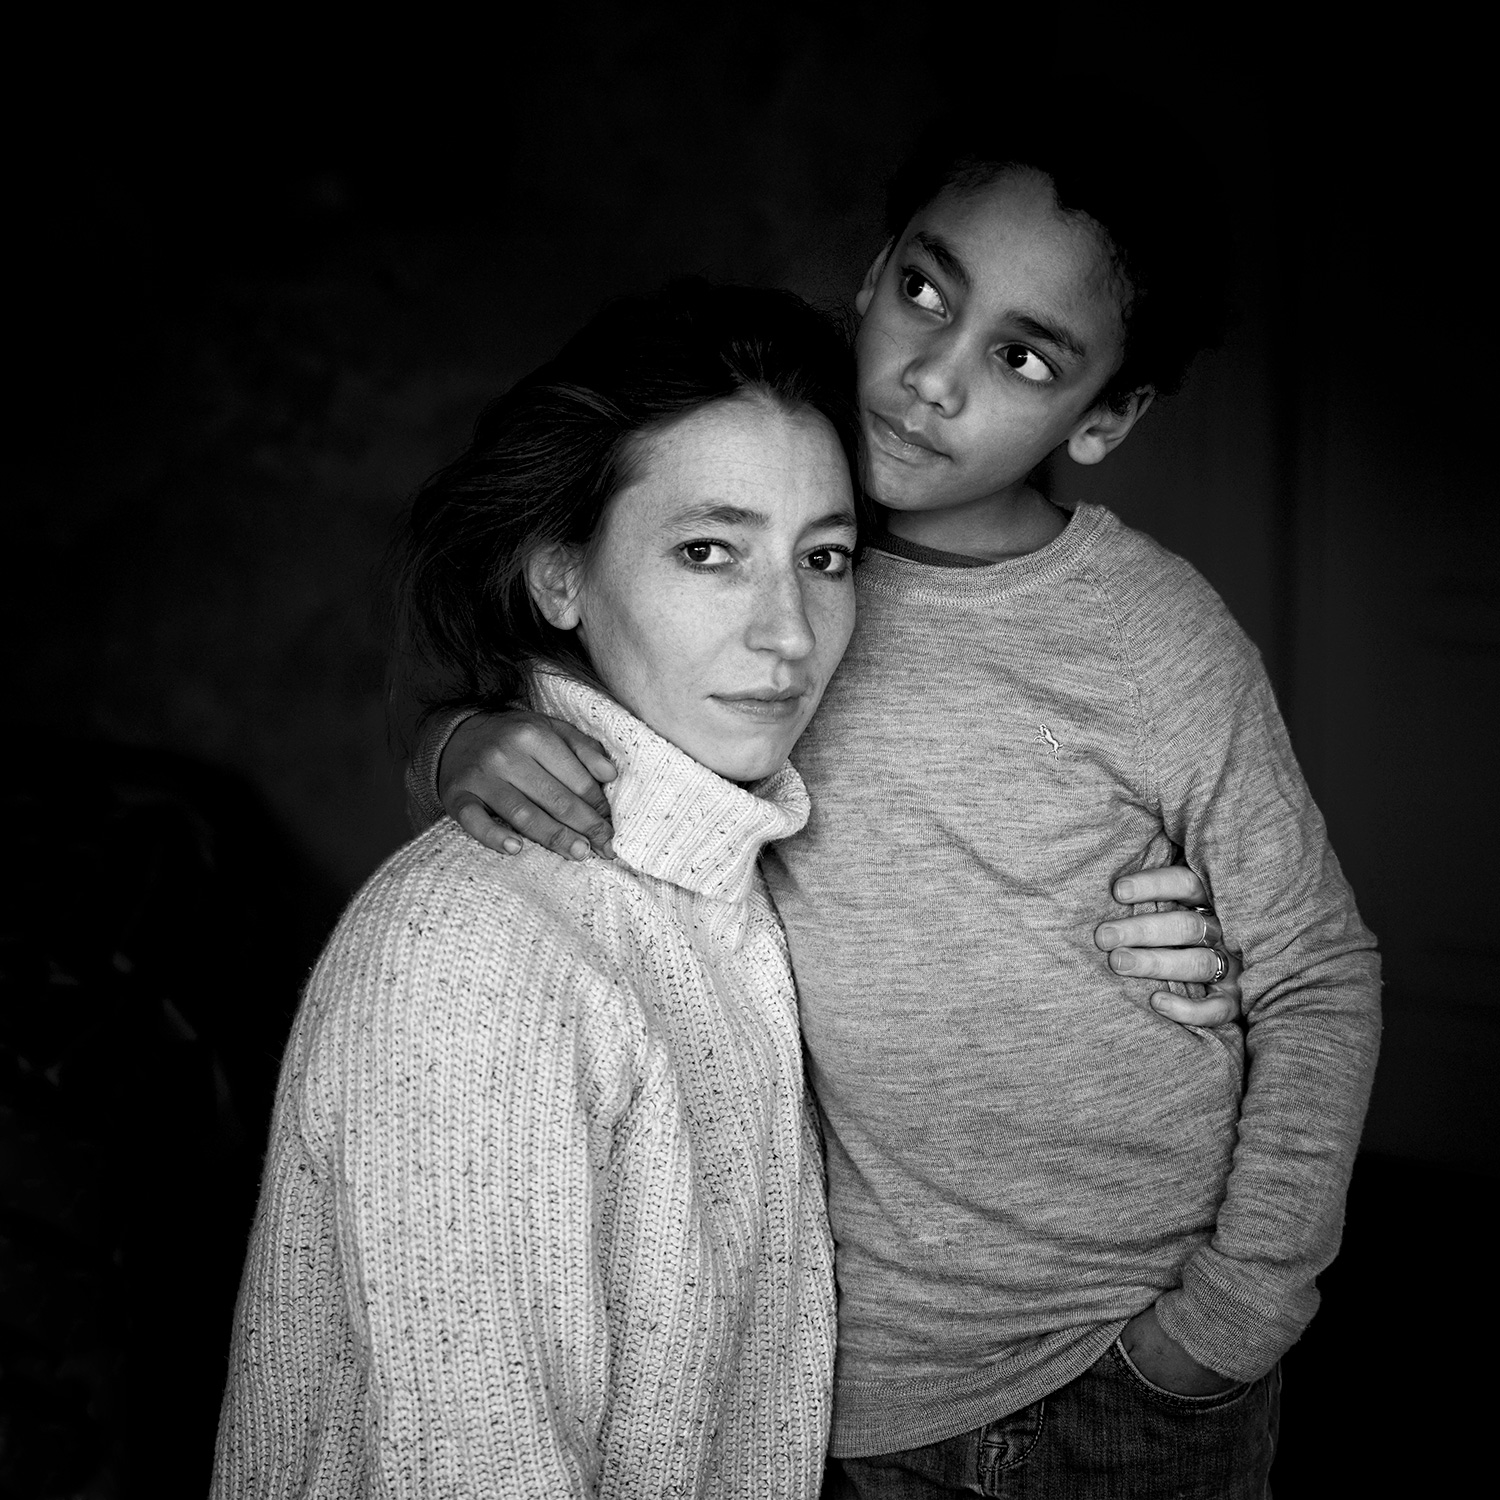 Black and white portrait of a white mother and her POC son